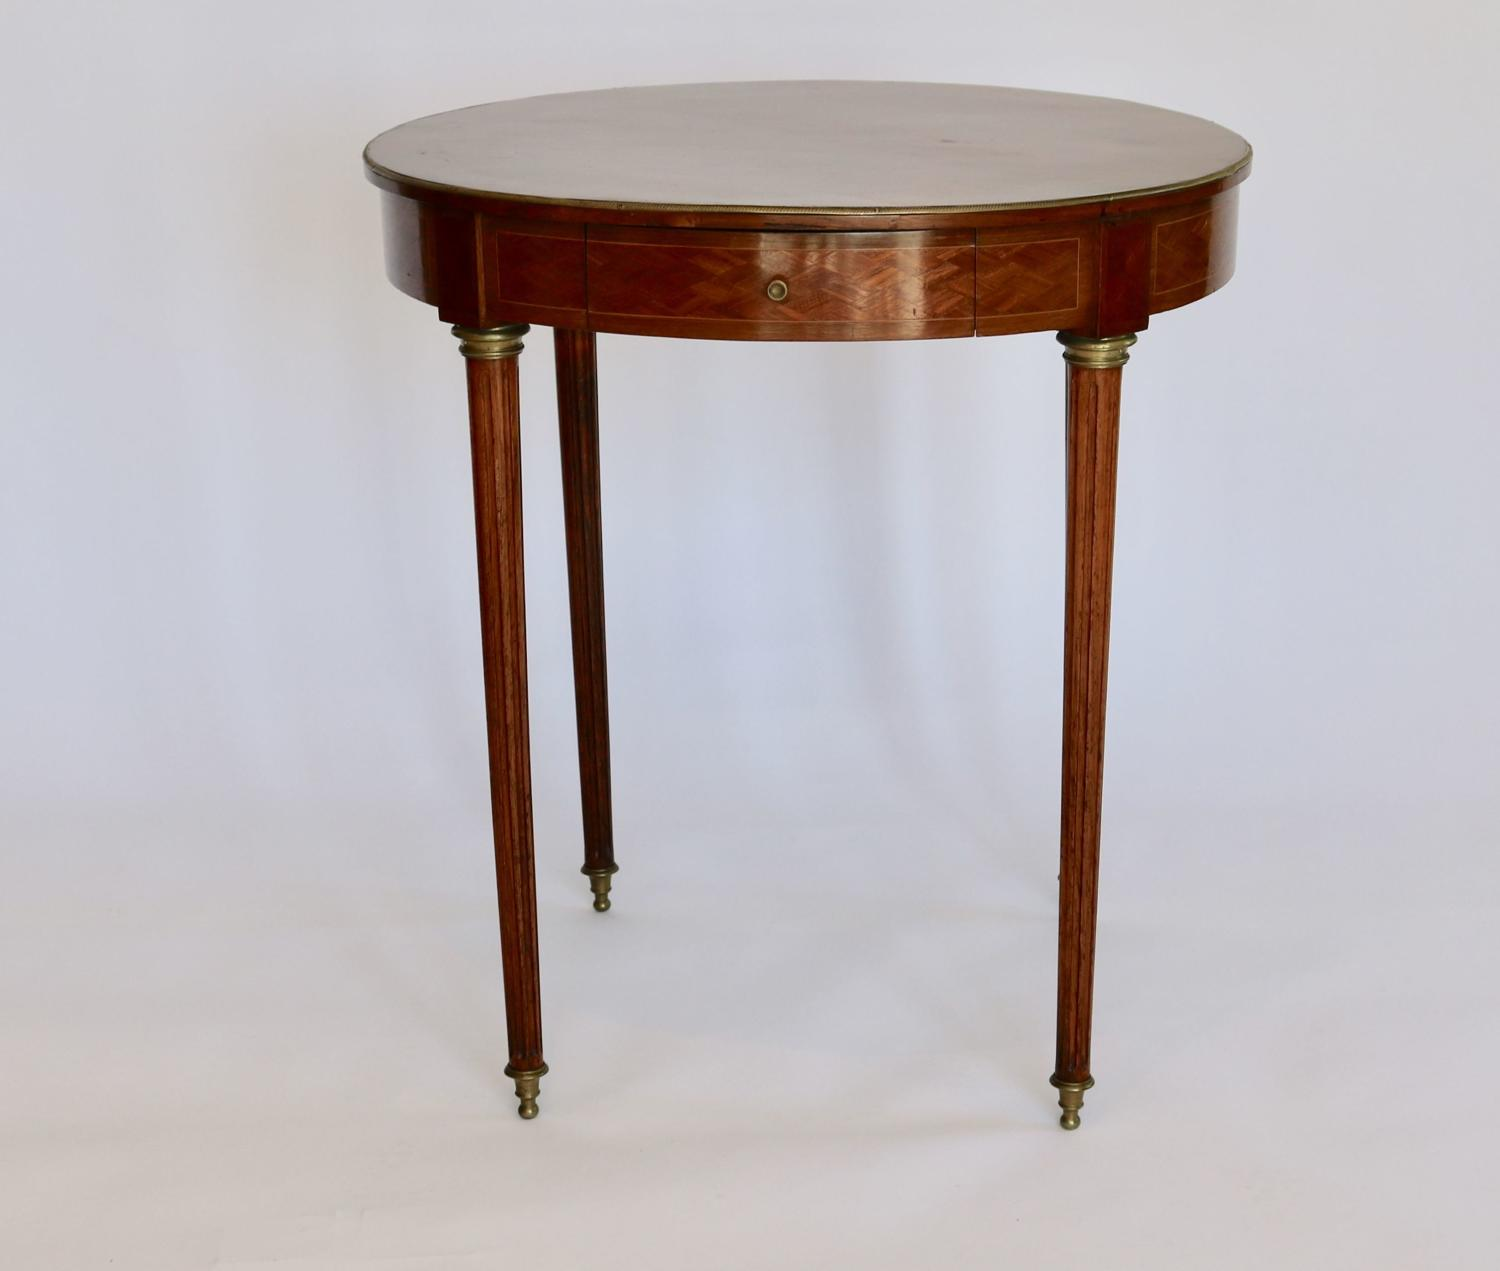 French Gueridon/ Circular Table